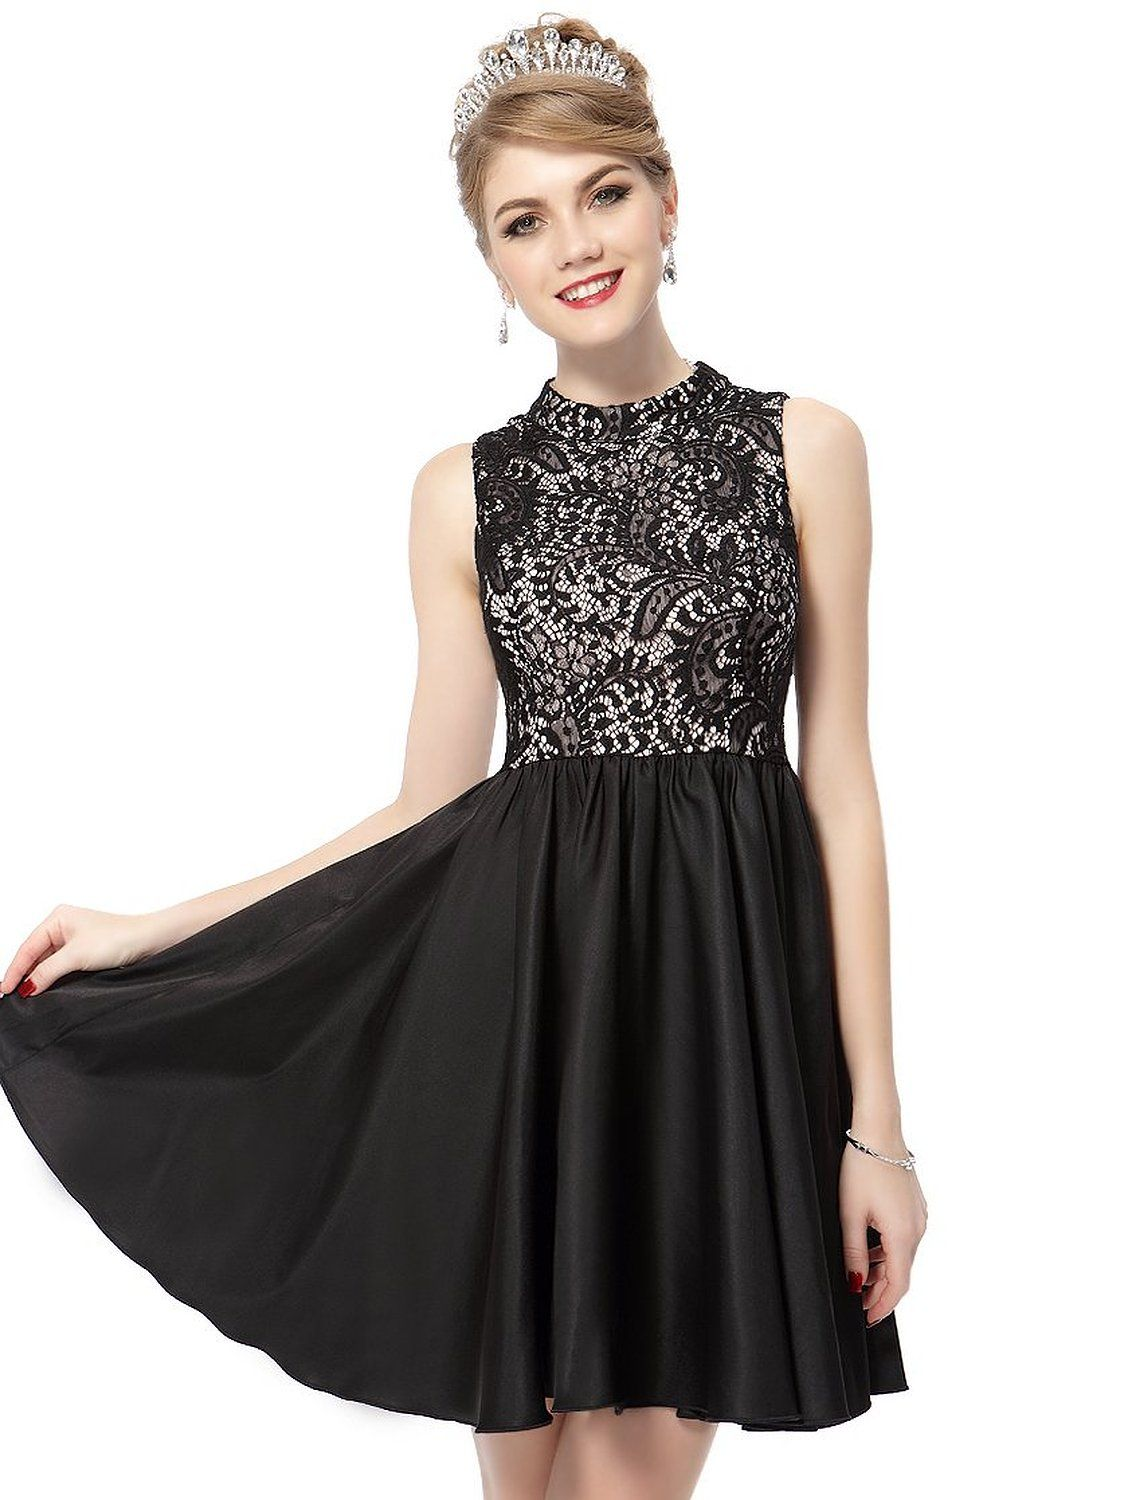 Black Cute dresses for juniors pictures pictures